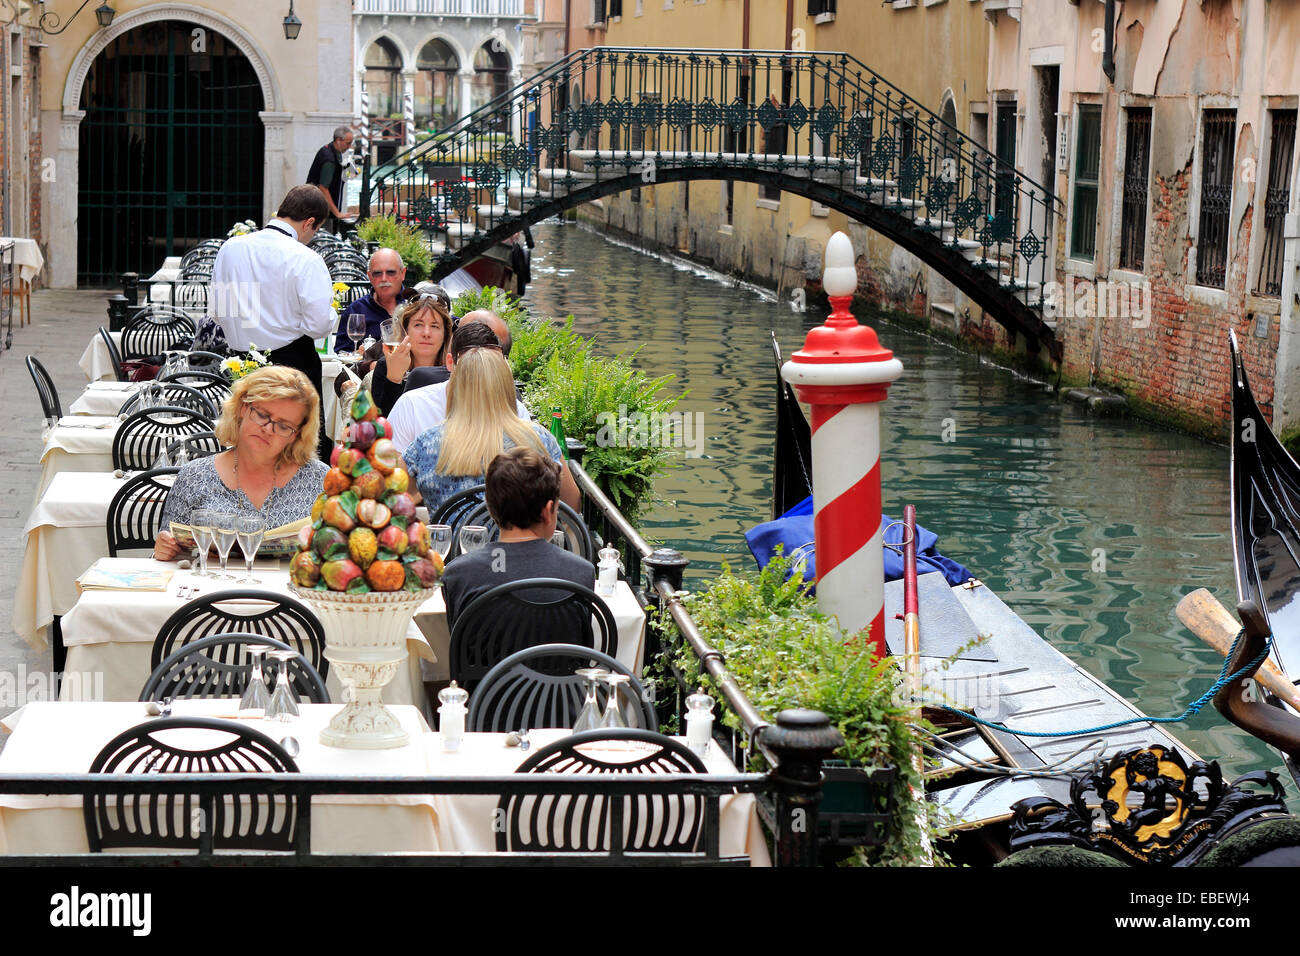 Venice Sestiere San Marco a waiter serves tourists along a small canal - Stock Image